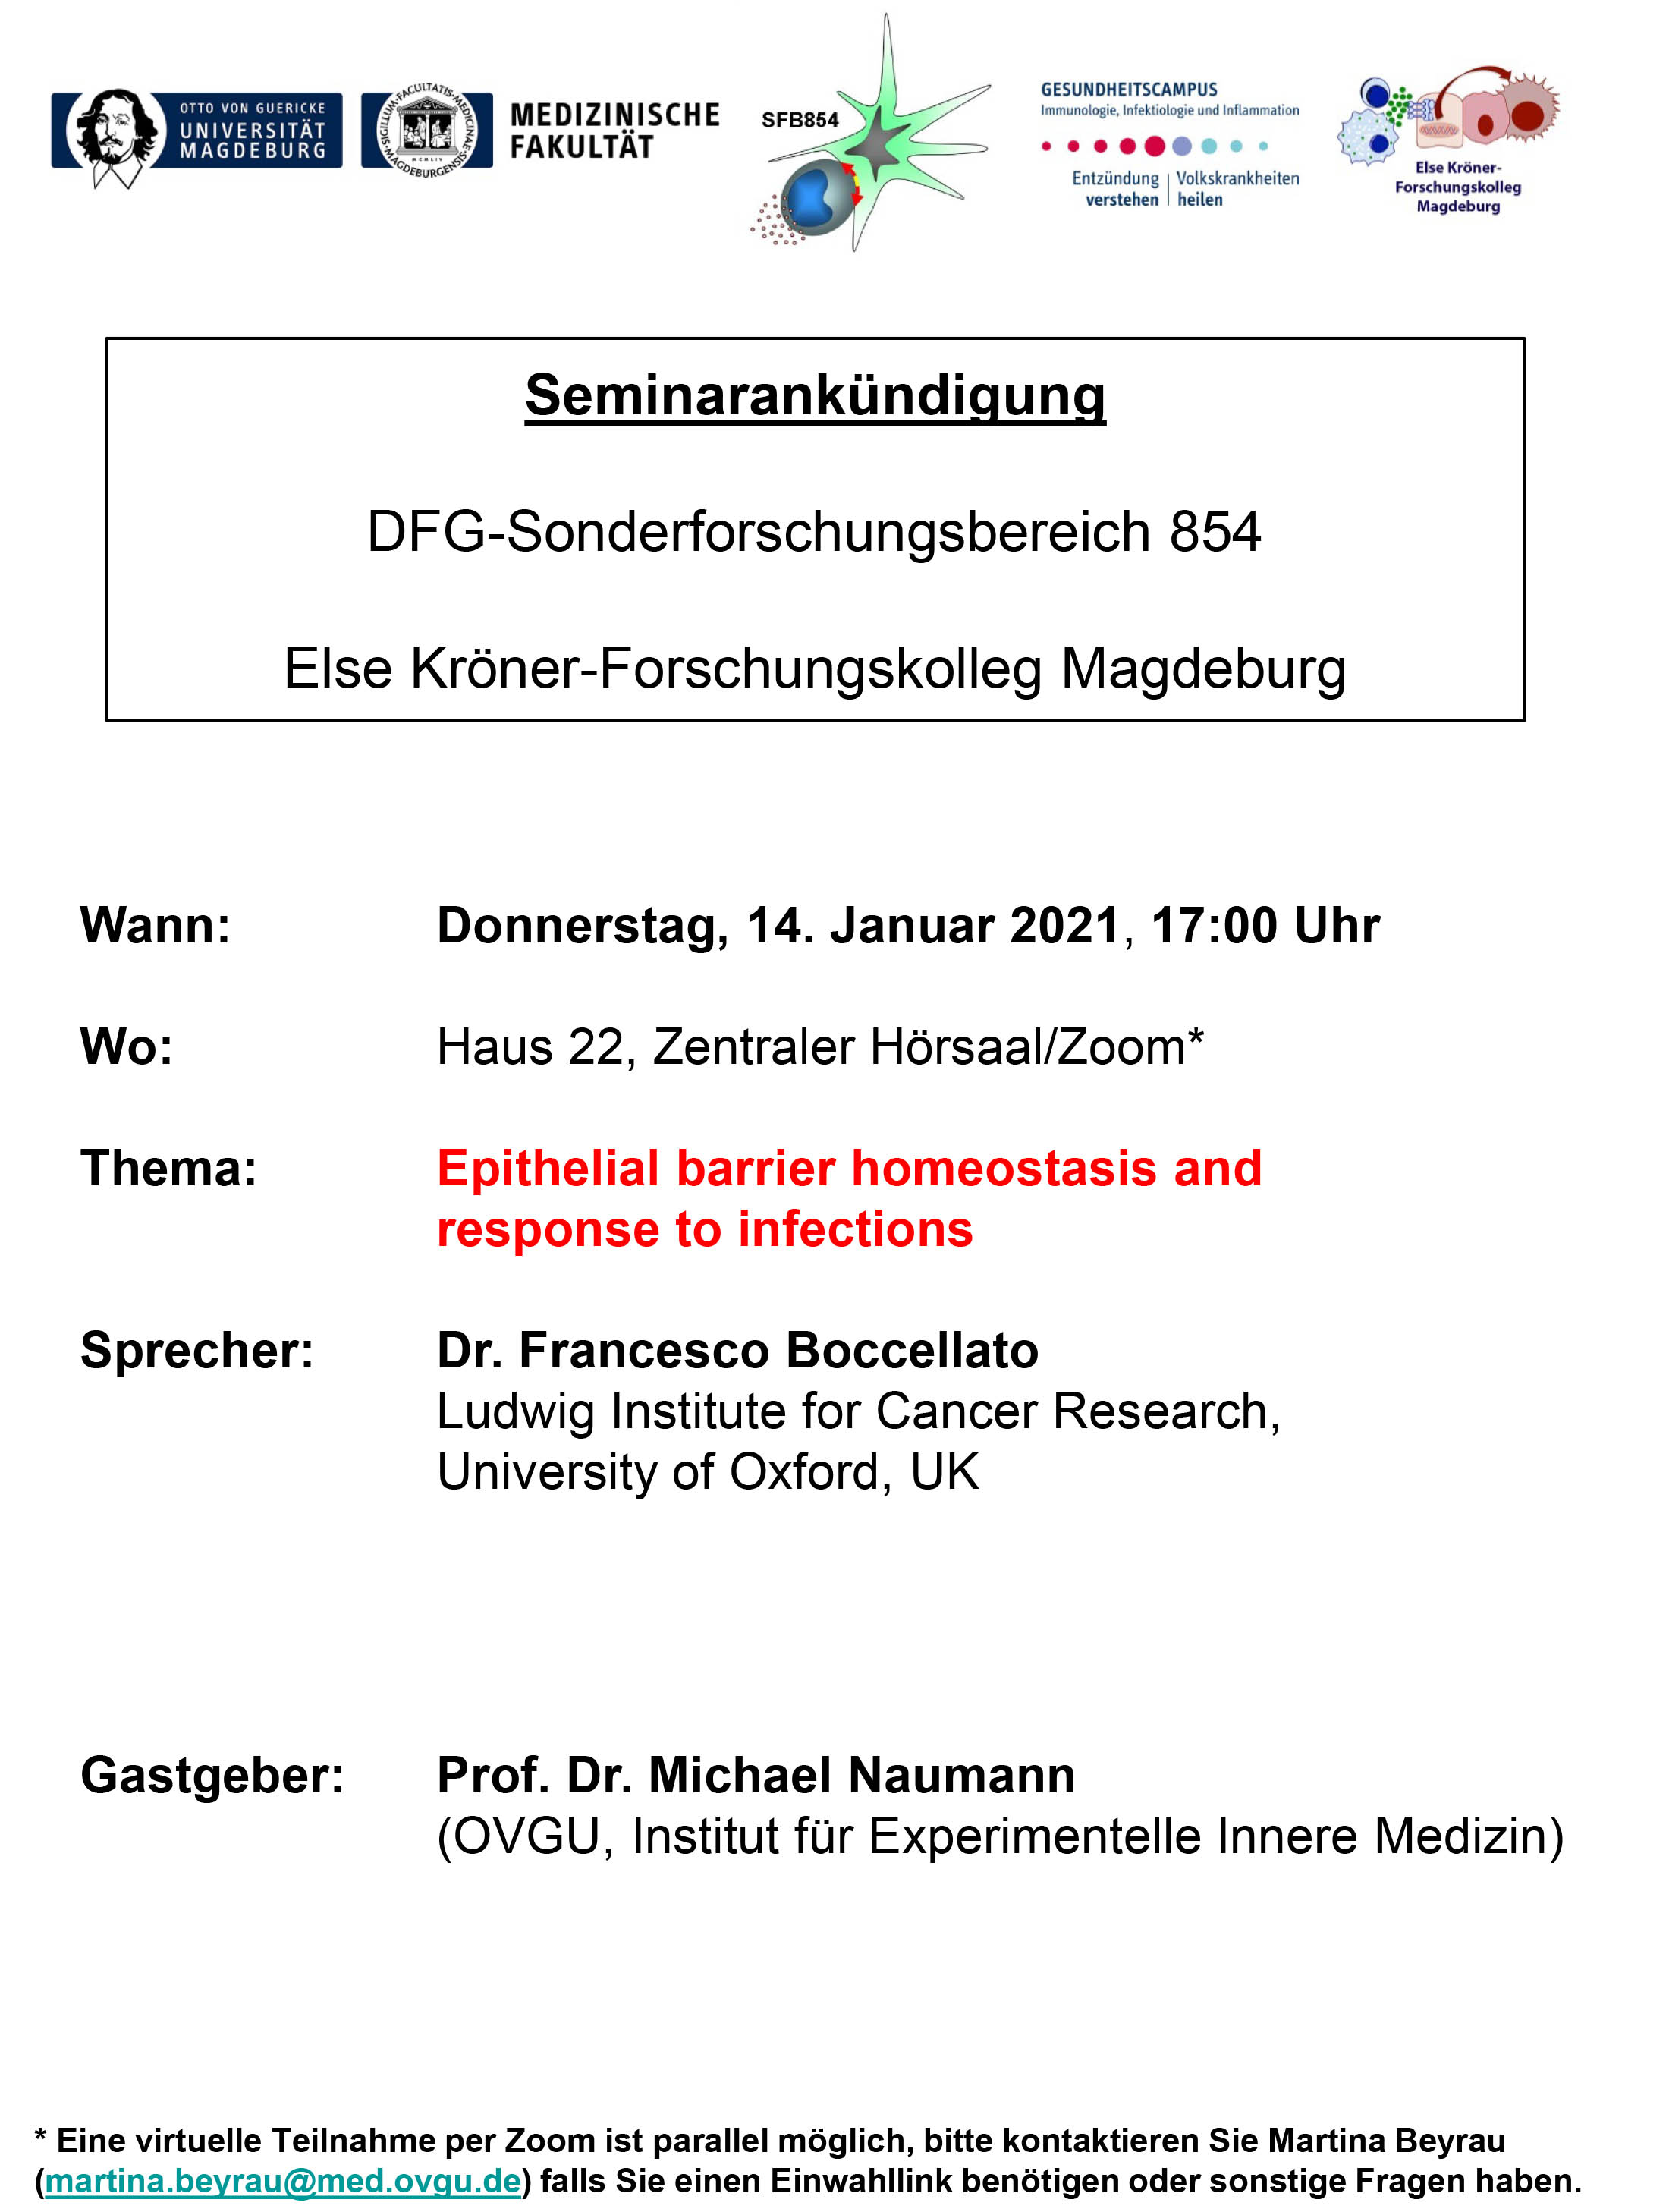 SFB 854 Seminar: Epithelial barrier homeostasis and response to infections @ Haus 22, Zentraler Hörsaal/Zoom